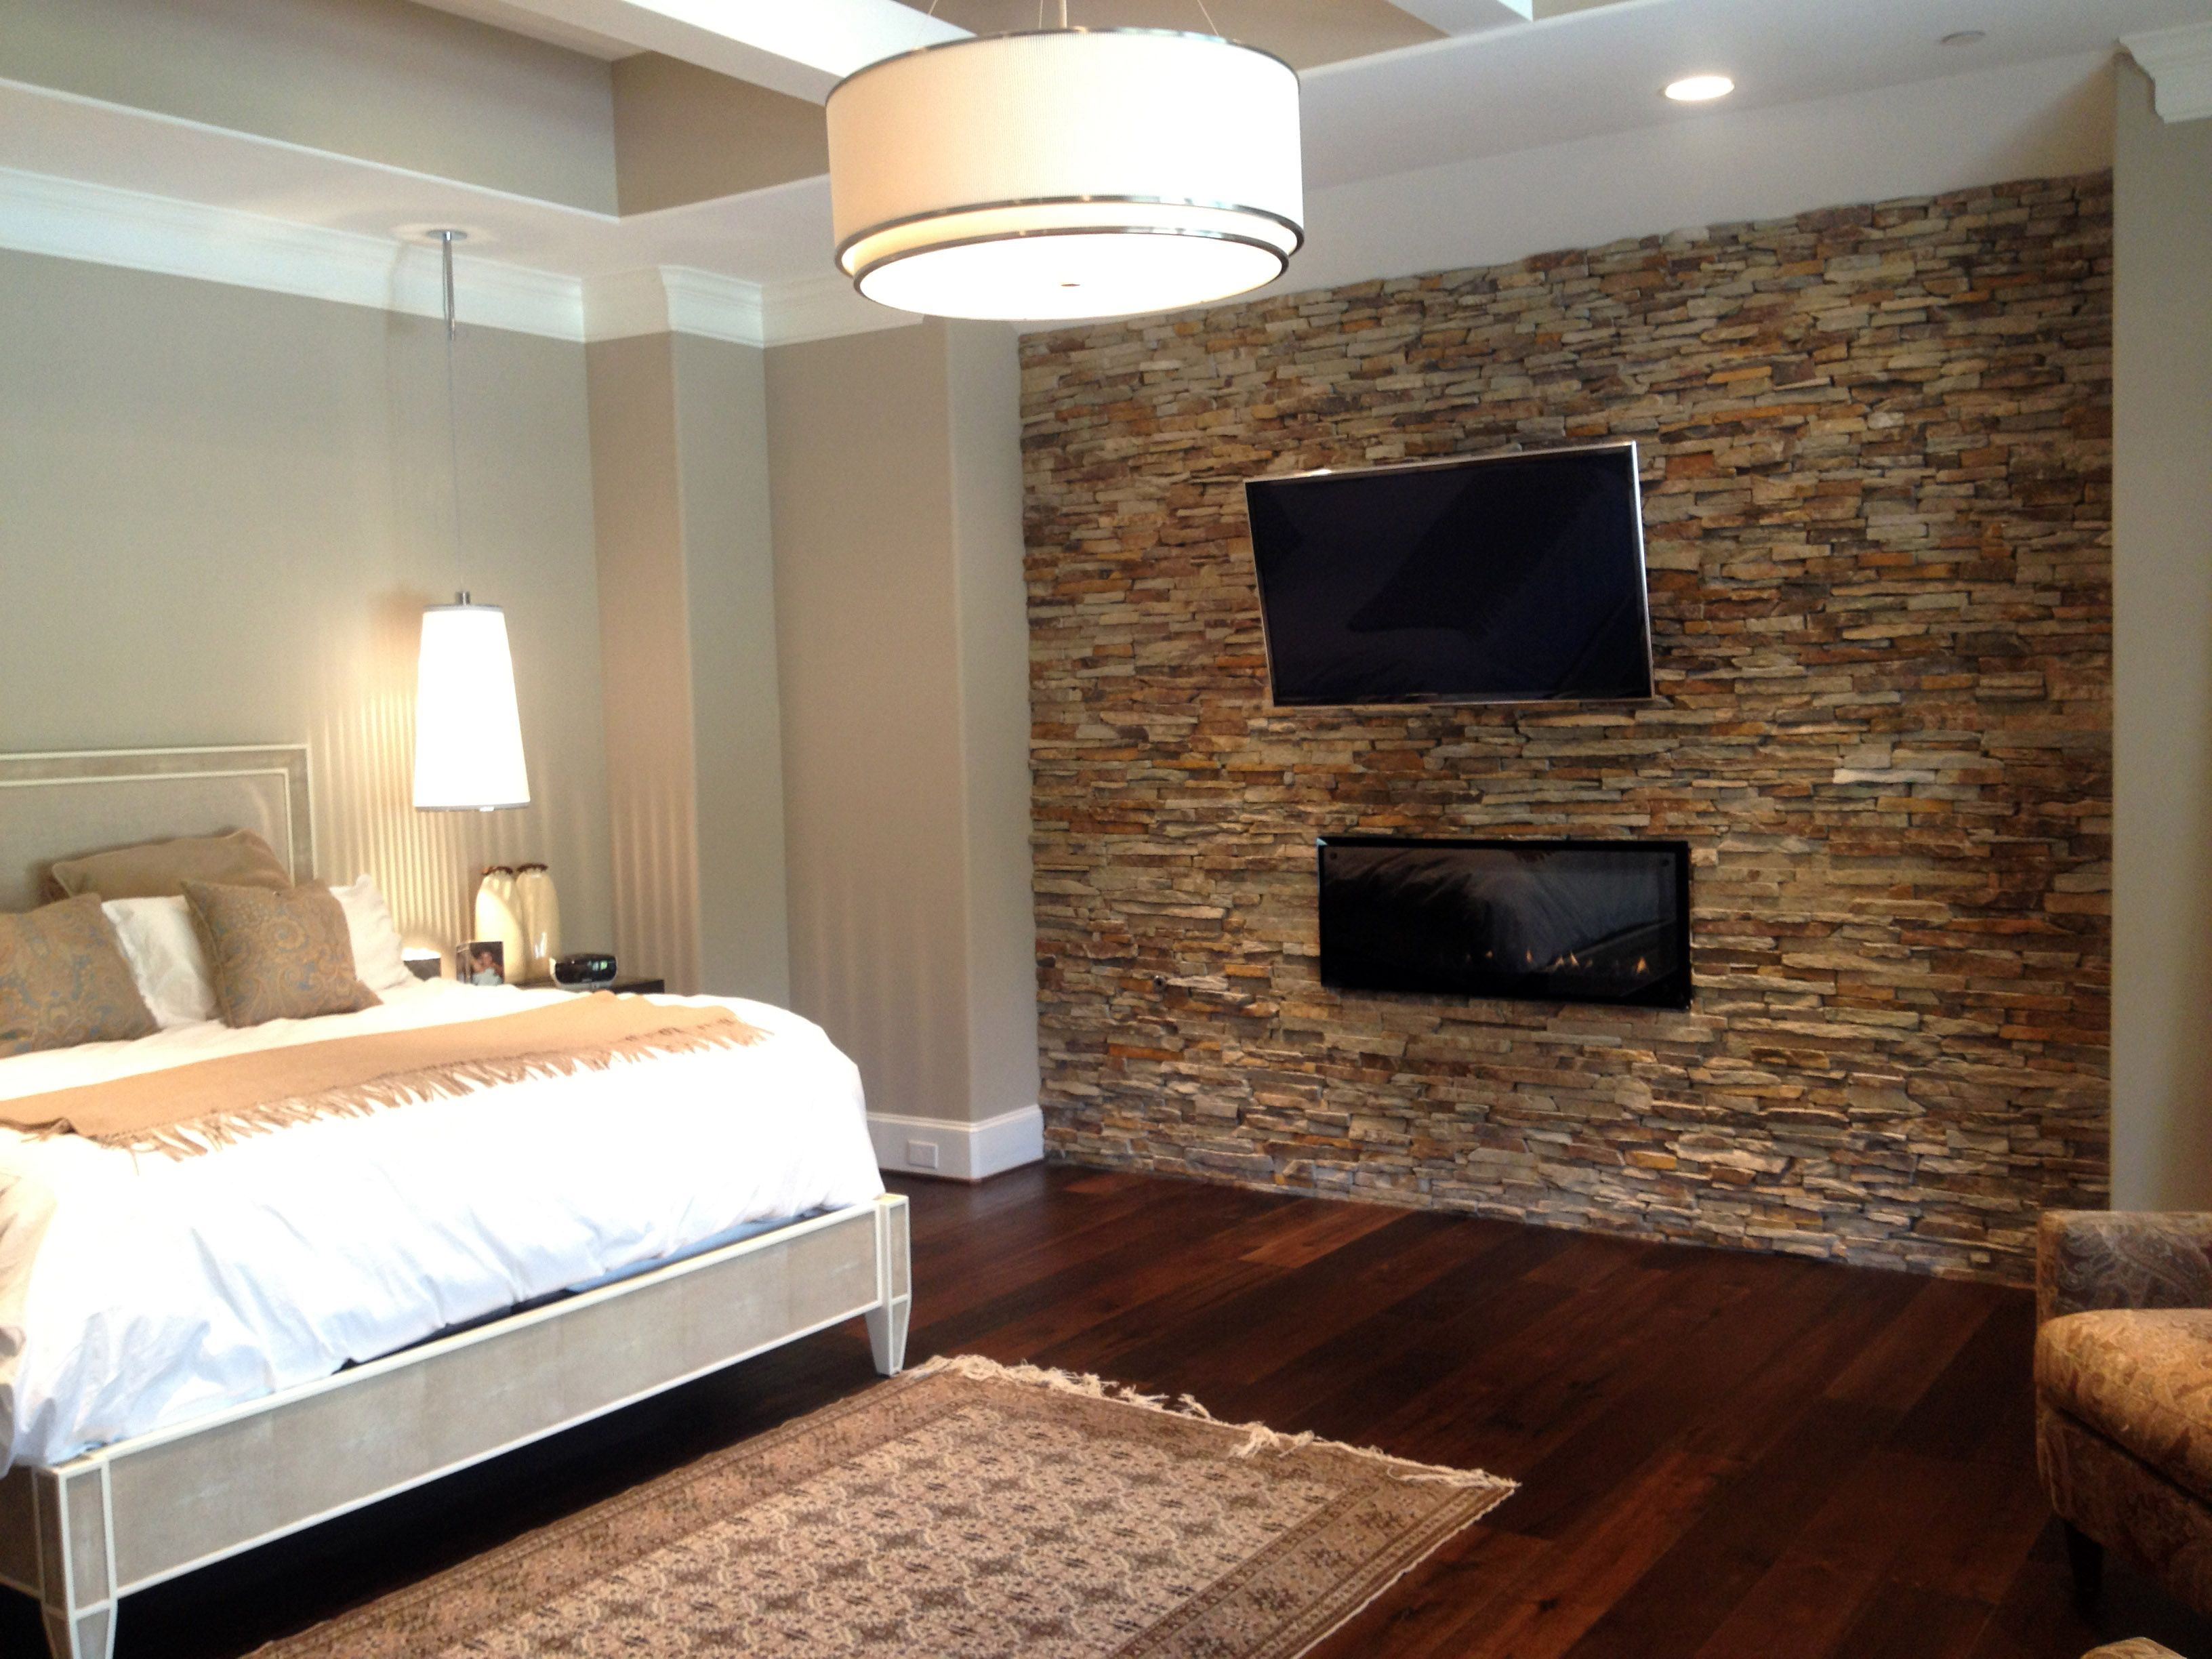 Master bedroom - Virginia Ledgestone - Accent Walls - Natural ...